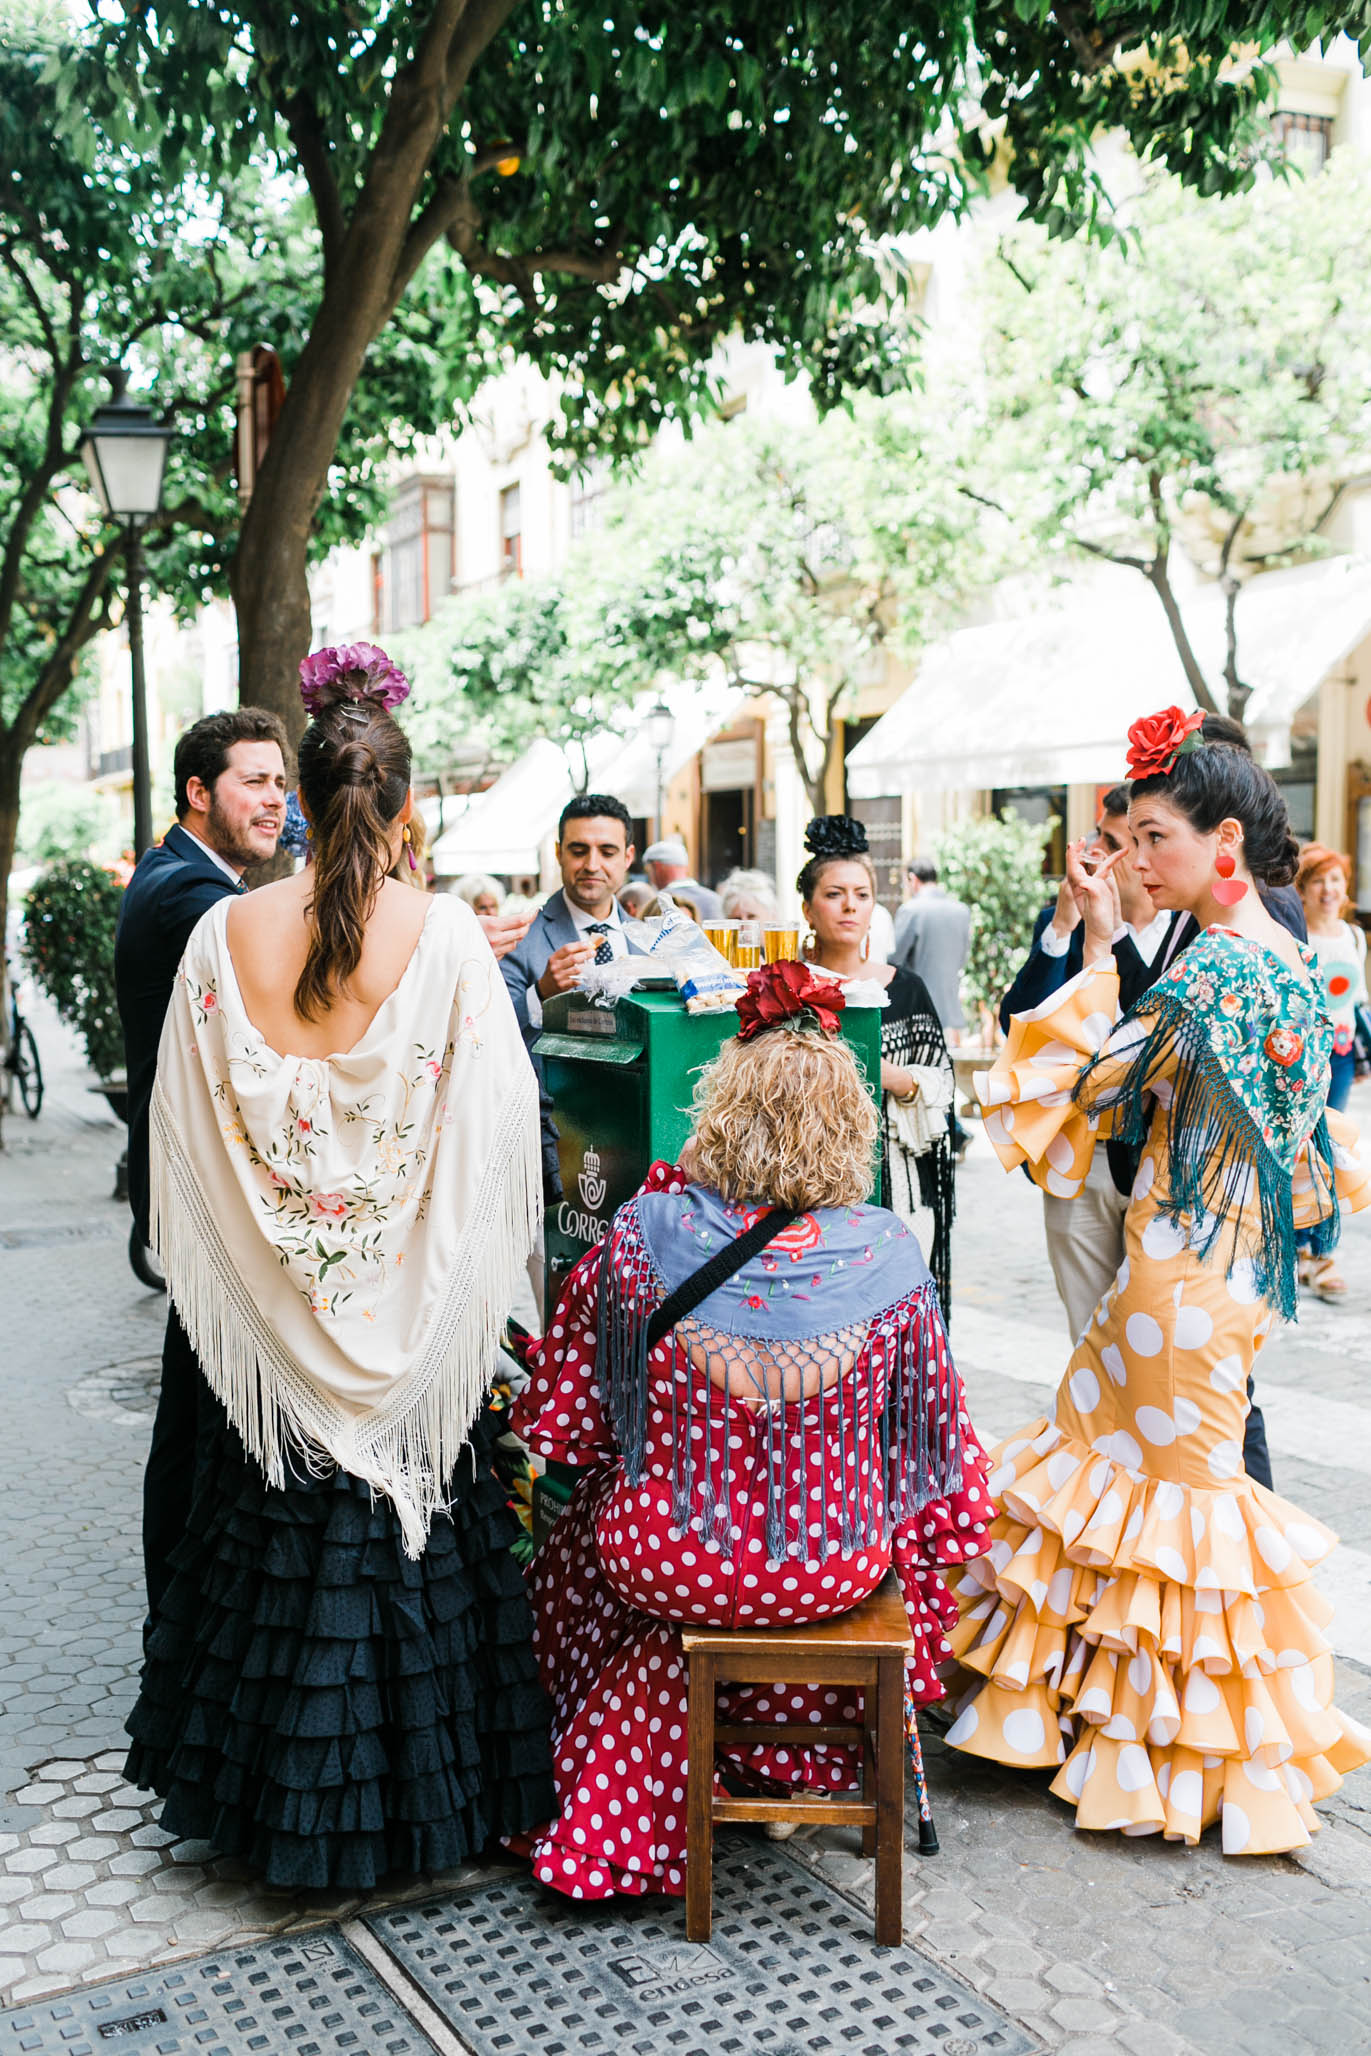 The people of Spain love to eat and drink—my kind of people.